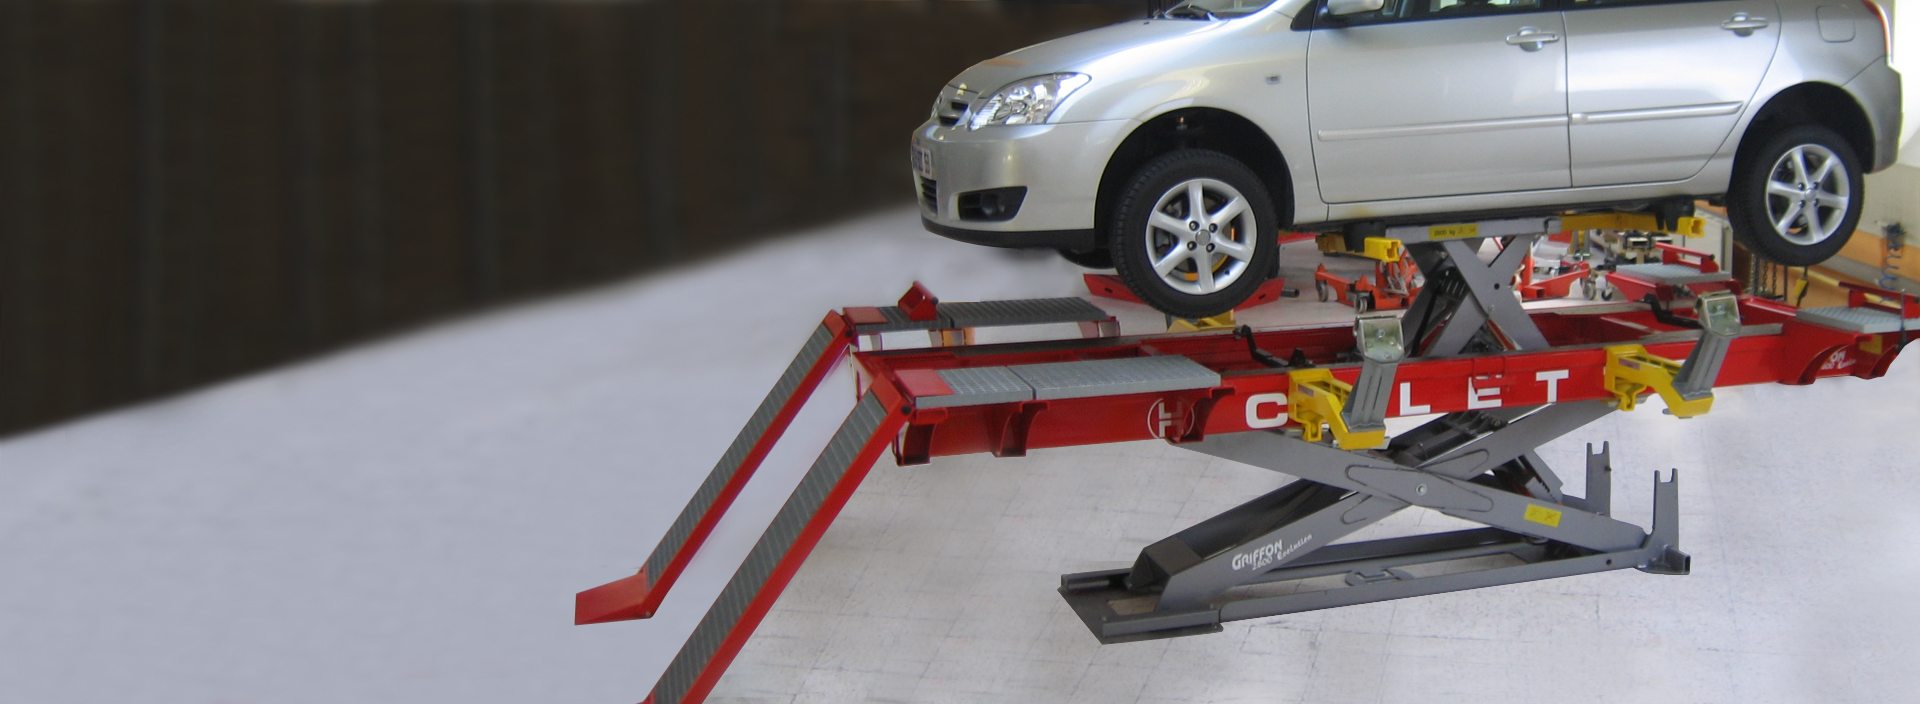 Collision Repair System, Frame Machine, Auto Body Equipment